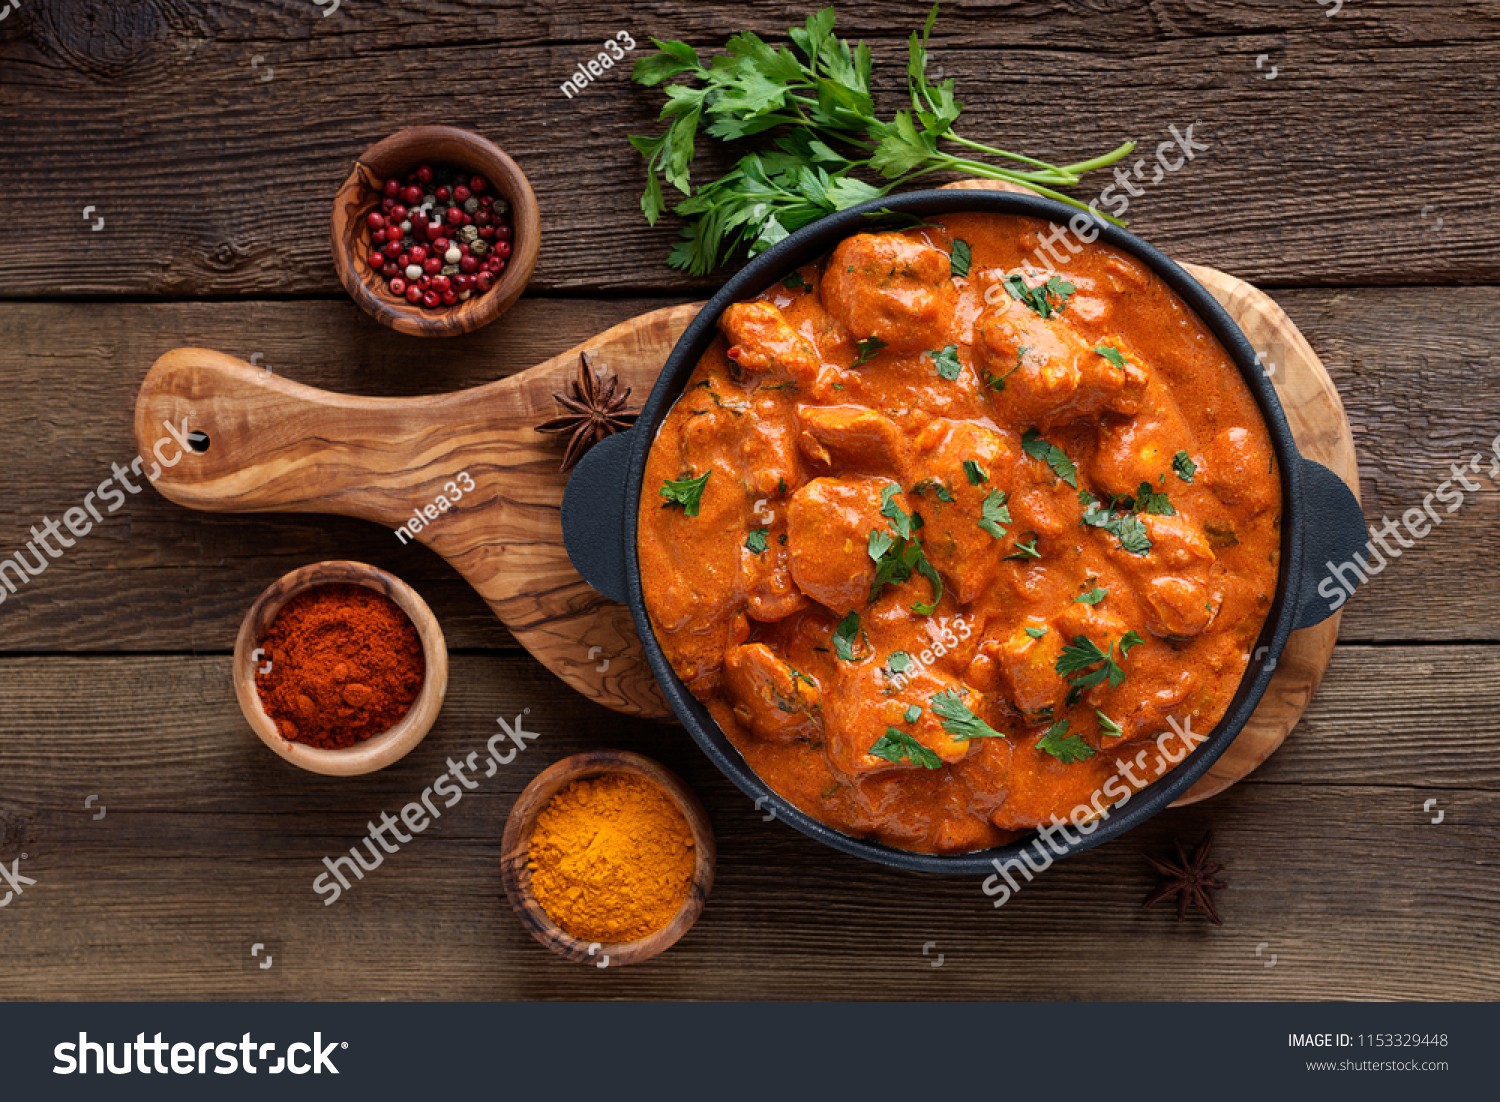 Tasty butter chicken curry dish from Indian cuisine. #1153329448